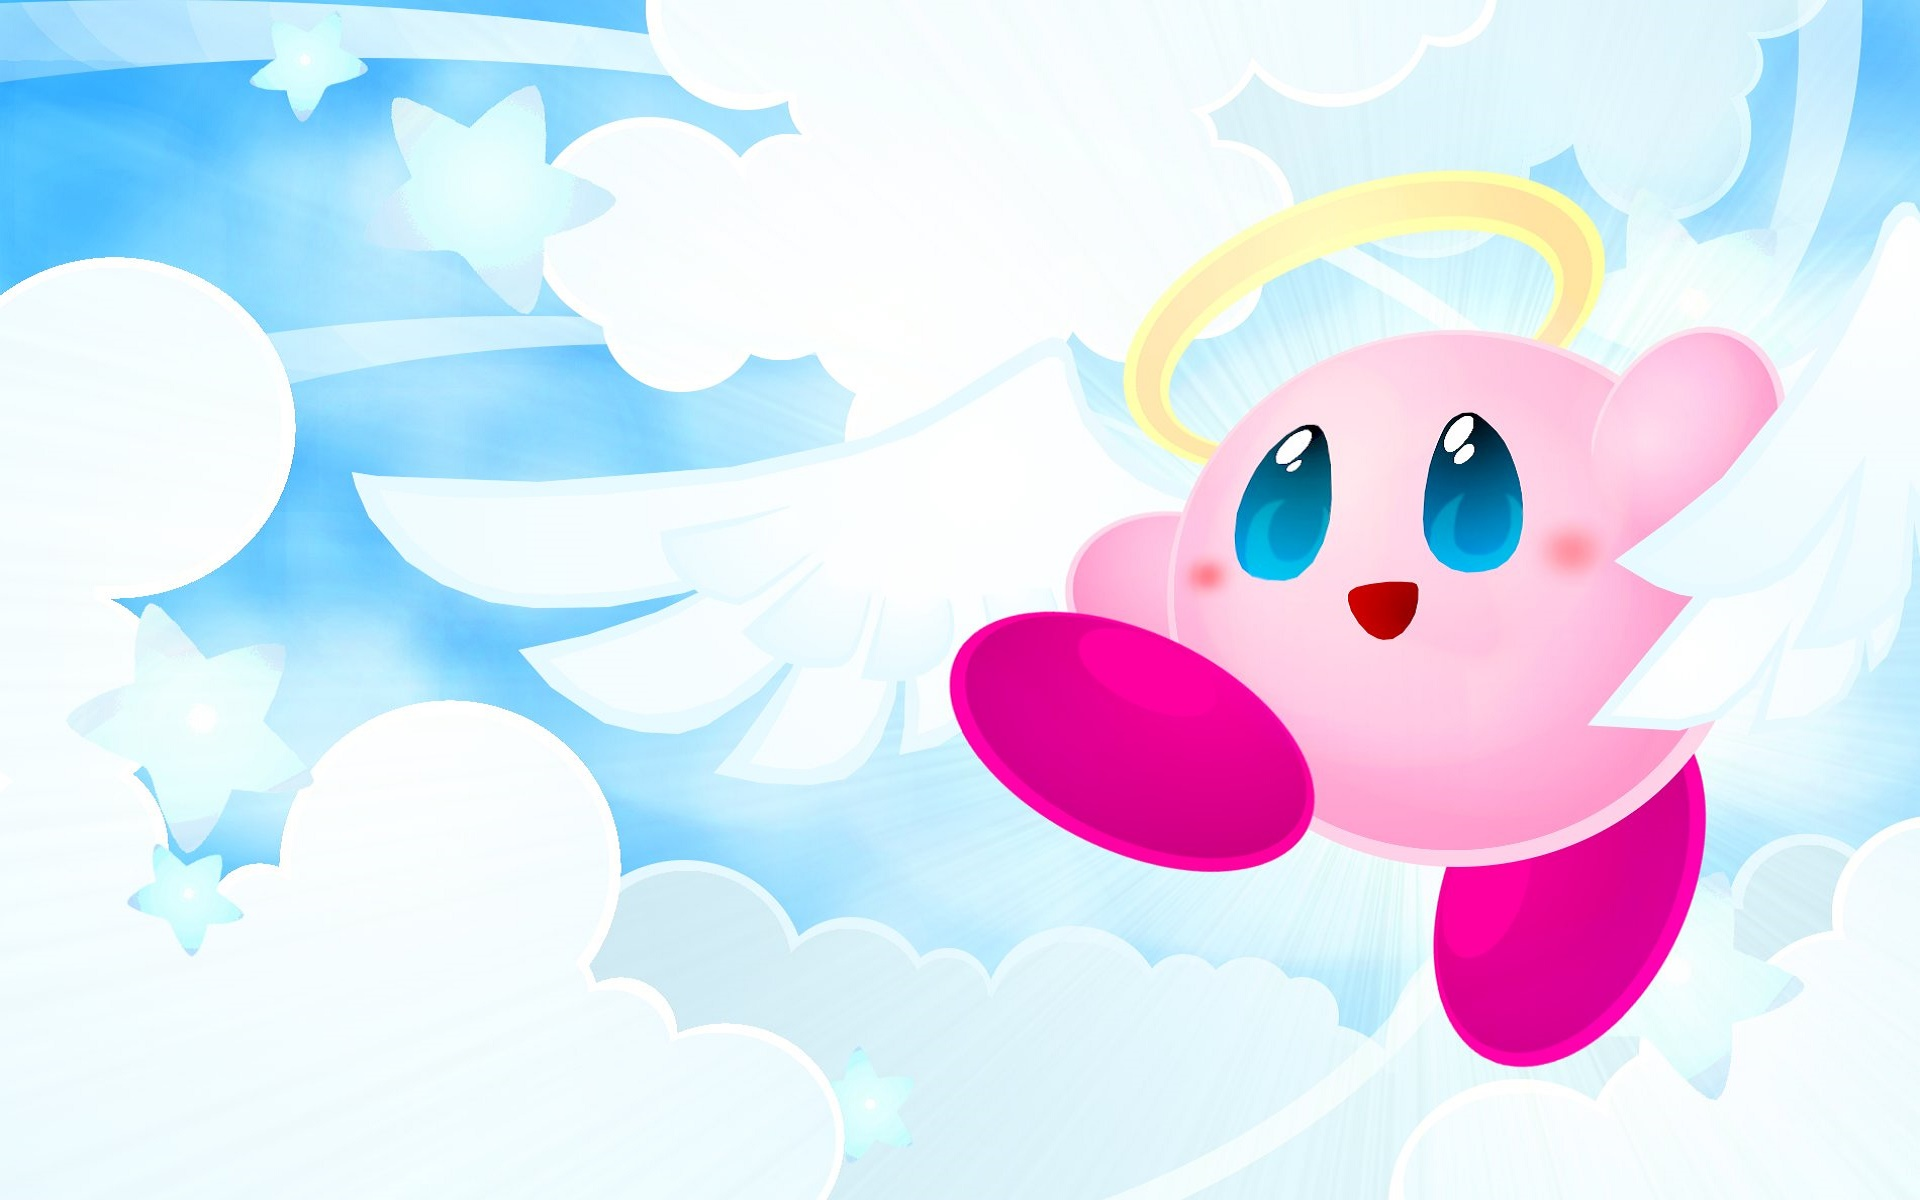 Free HD Kirby Wallpapers | Page 3 of 3 | wallpaper.wiki